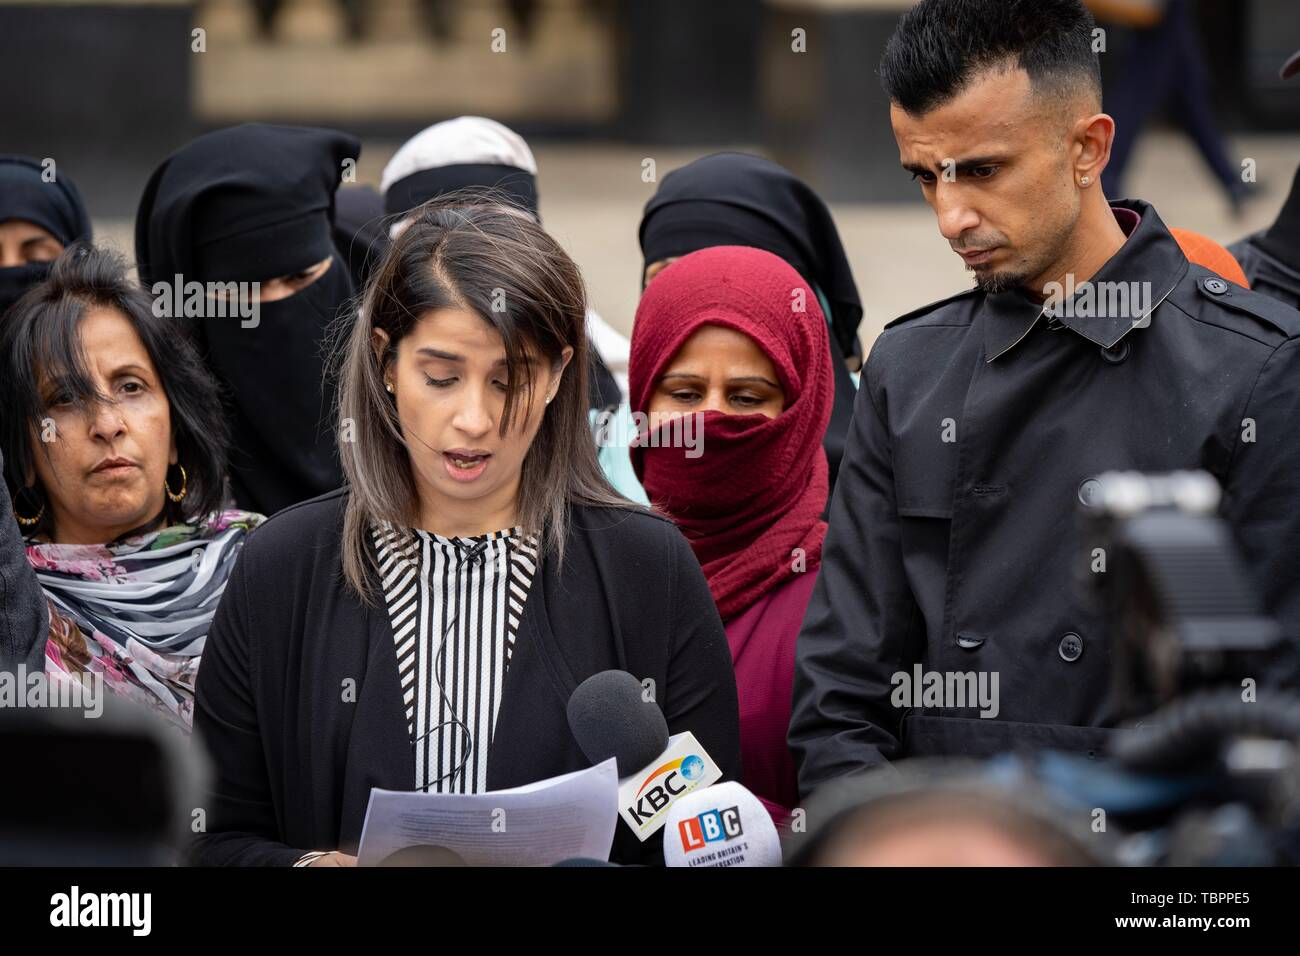 Birmingham, UK. 3rd Jun, 2019. Shakeel Afsar and Rosina Afsar speak to press regarding the High Court injunction imposed on protesting outside Anderton Park primary school outside Birmingham City Council house, Birmingham, UK. Protesters object to teaching of LGBTQ+ values at the primary school. Credit: Vladimir Morozov - Stock Image